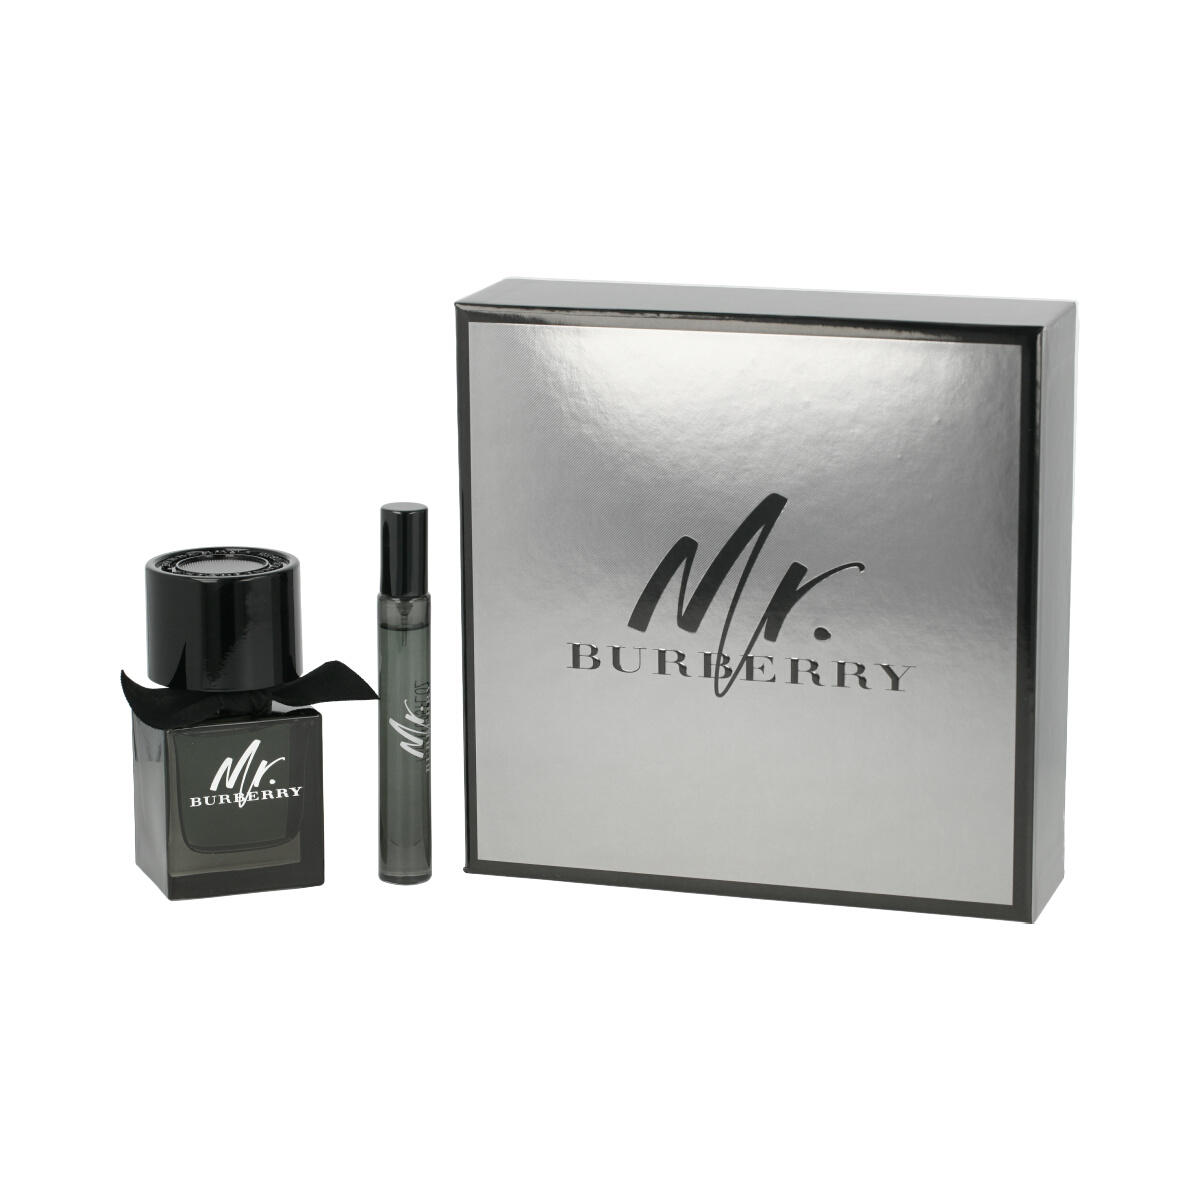 Burberry Mr. Burberry EDP 50 ml + EDP MINI 7,5 ml (man) 97743